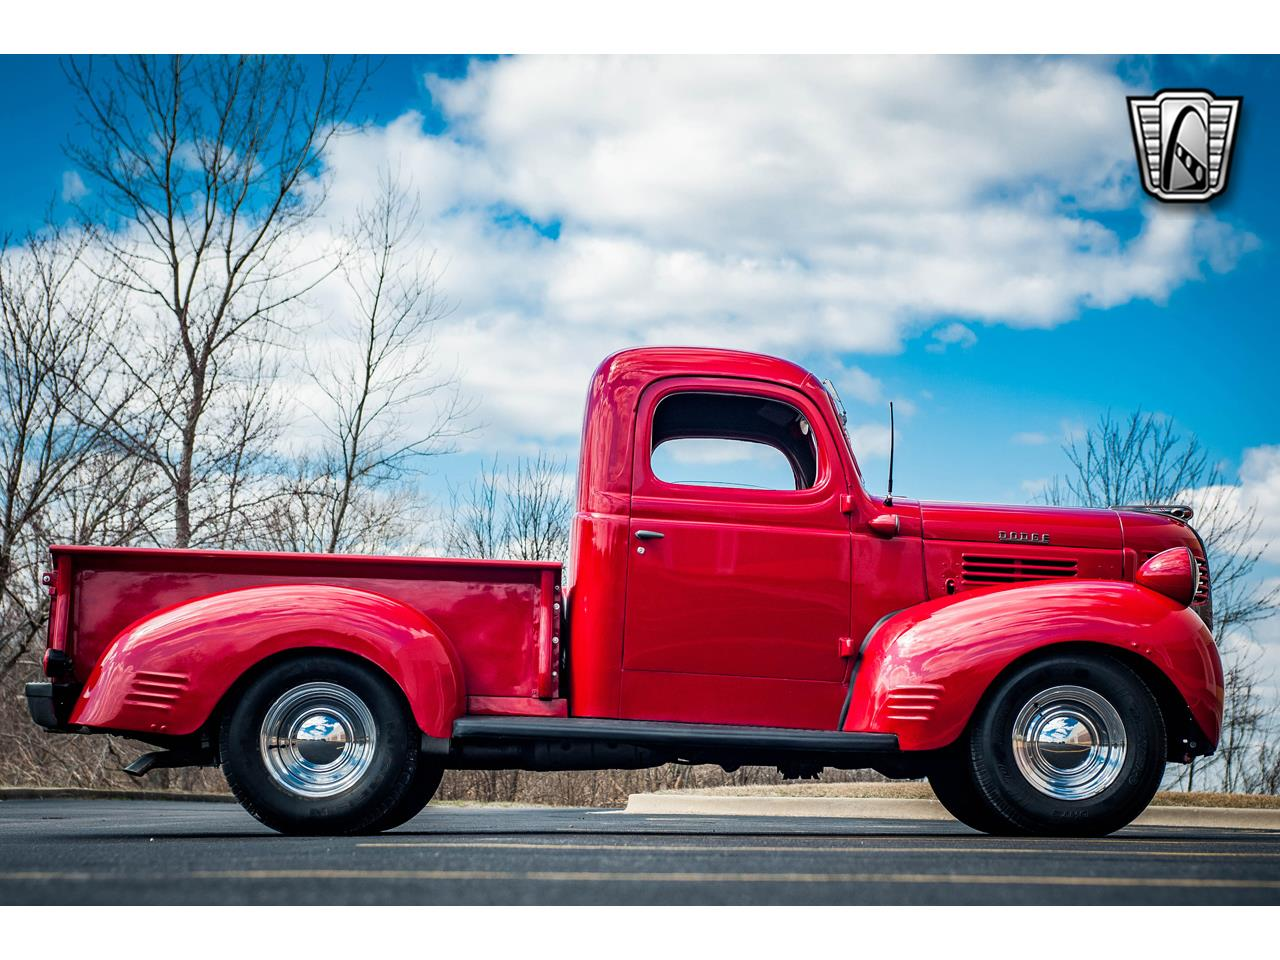 Large Picture of '45 Dodge Pickup located in Illinois - $25,500.00 Offered by Gateway Classic Cars - St. Louis - QB7O